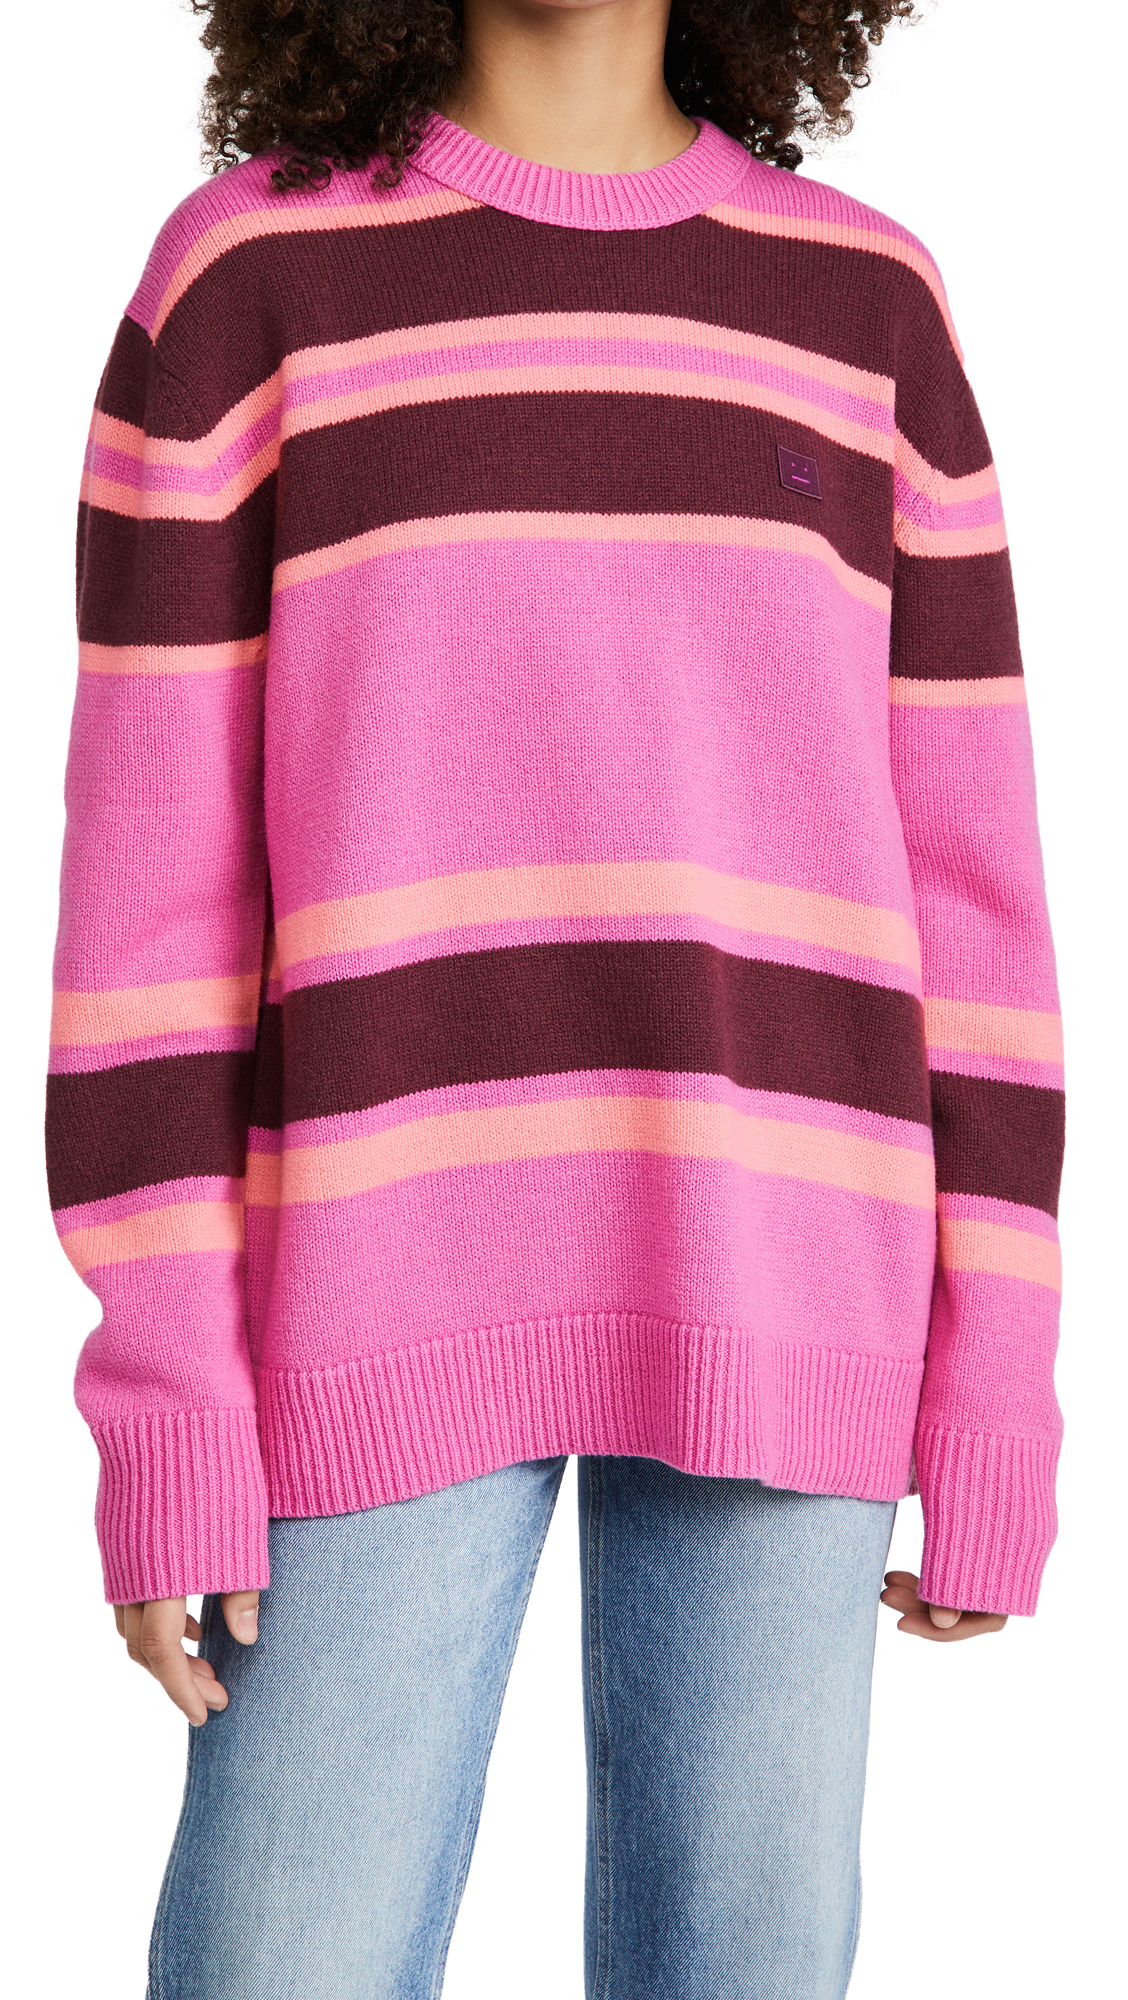 Acne Studios Nimah Block Striped Sweater